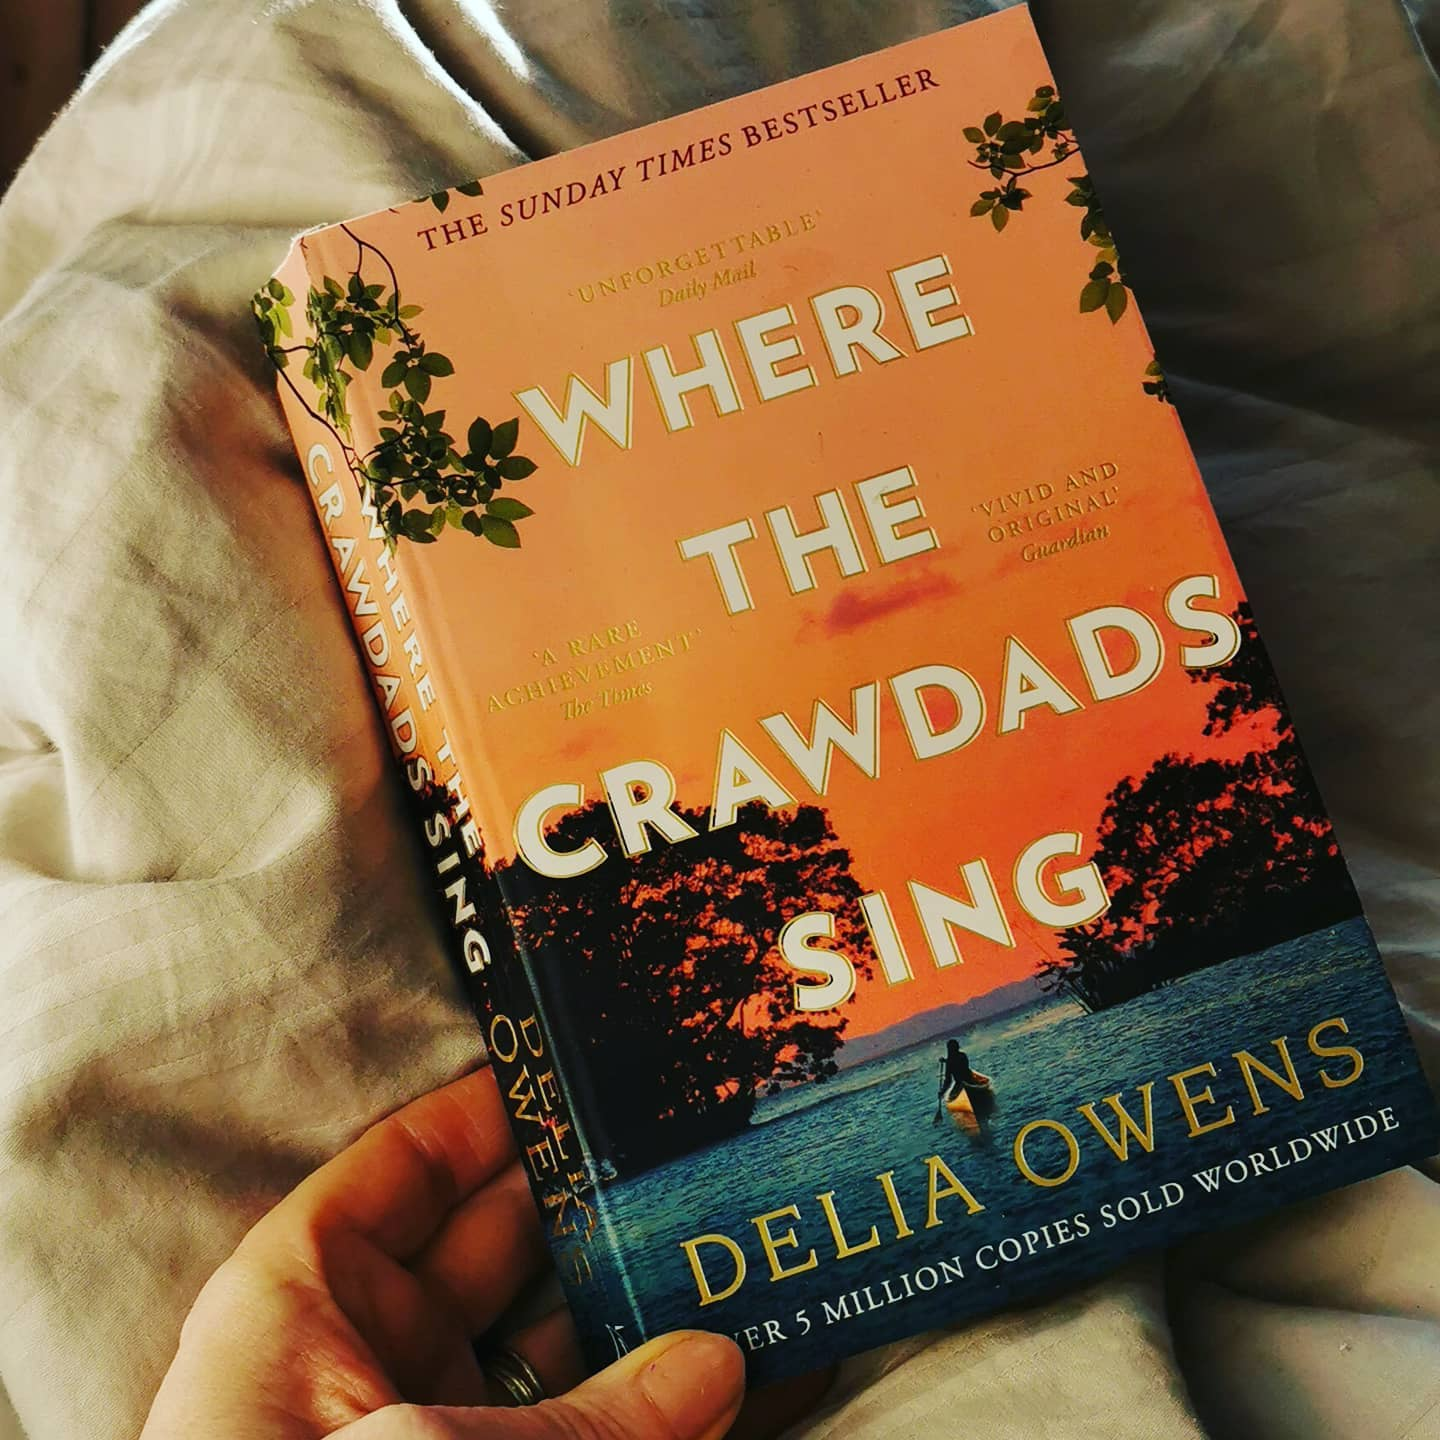 Where the crawdads sing by Delia Owems. I just finished reading this. I sometimes find bestsellers hard to read as other people's opinions and thoughts weight heavily on my own. It's not that I allow other reader's thoughts intrude on mine, it's just that I don't want to offend a fellow reader's book taste. This is a taste thing. I feel grumpy after reading this book. I appreciate the author's writing of the landscape and nature. I appreciate the different idea of a girl living in a marsh in seclusion. I appreciate how the girl's isolation is depicted. All these elements work well. What didn't work for me as a reader was the mish mash of genres. Is this book a Mills and boons as it certainly verges into that that at times. Is it a crime thriller? Kinda but the court scenes where the main character is set before a jury are so weak, boring and the dialogue needs reworking. Is it a film script? Oh yes, it is and that's the main problem for me. I know that when we write that images are conjured up can be film like but this story or novel really feels like it was written or rewritten with a silver screen on mind. Especially the ending which I was not one bit surprised by. Apparently Daisy Edgar Jones is being mentioned to play Kya, the main character. Let's hope Daisy can make Kya somewhat appealing or fun to be with. I couldn't understand why anyone would want to spend time with Kya as she was portrayed as being joyless. Gosh this is harsh and now it's awkward but I have to ask what did you think of the best selling novel/film that is the Crawdads?